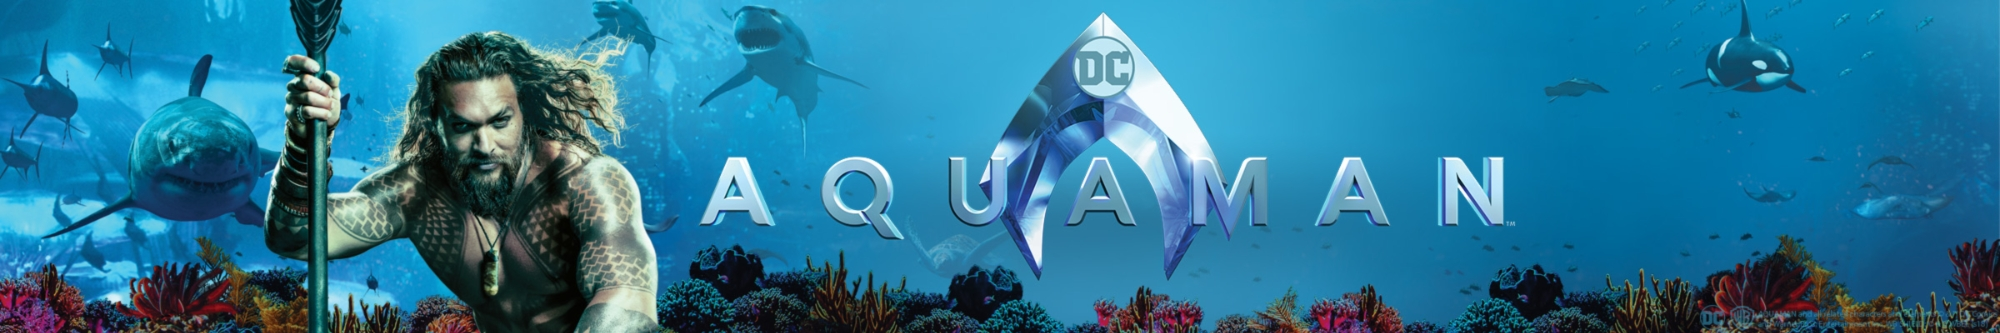 Showroom - Aquaman